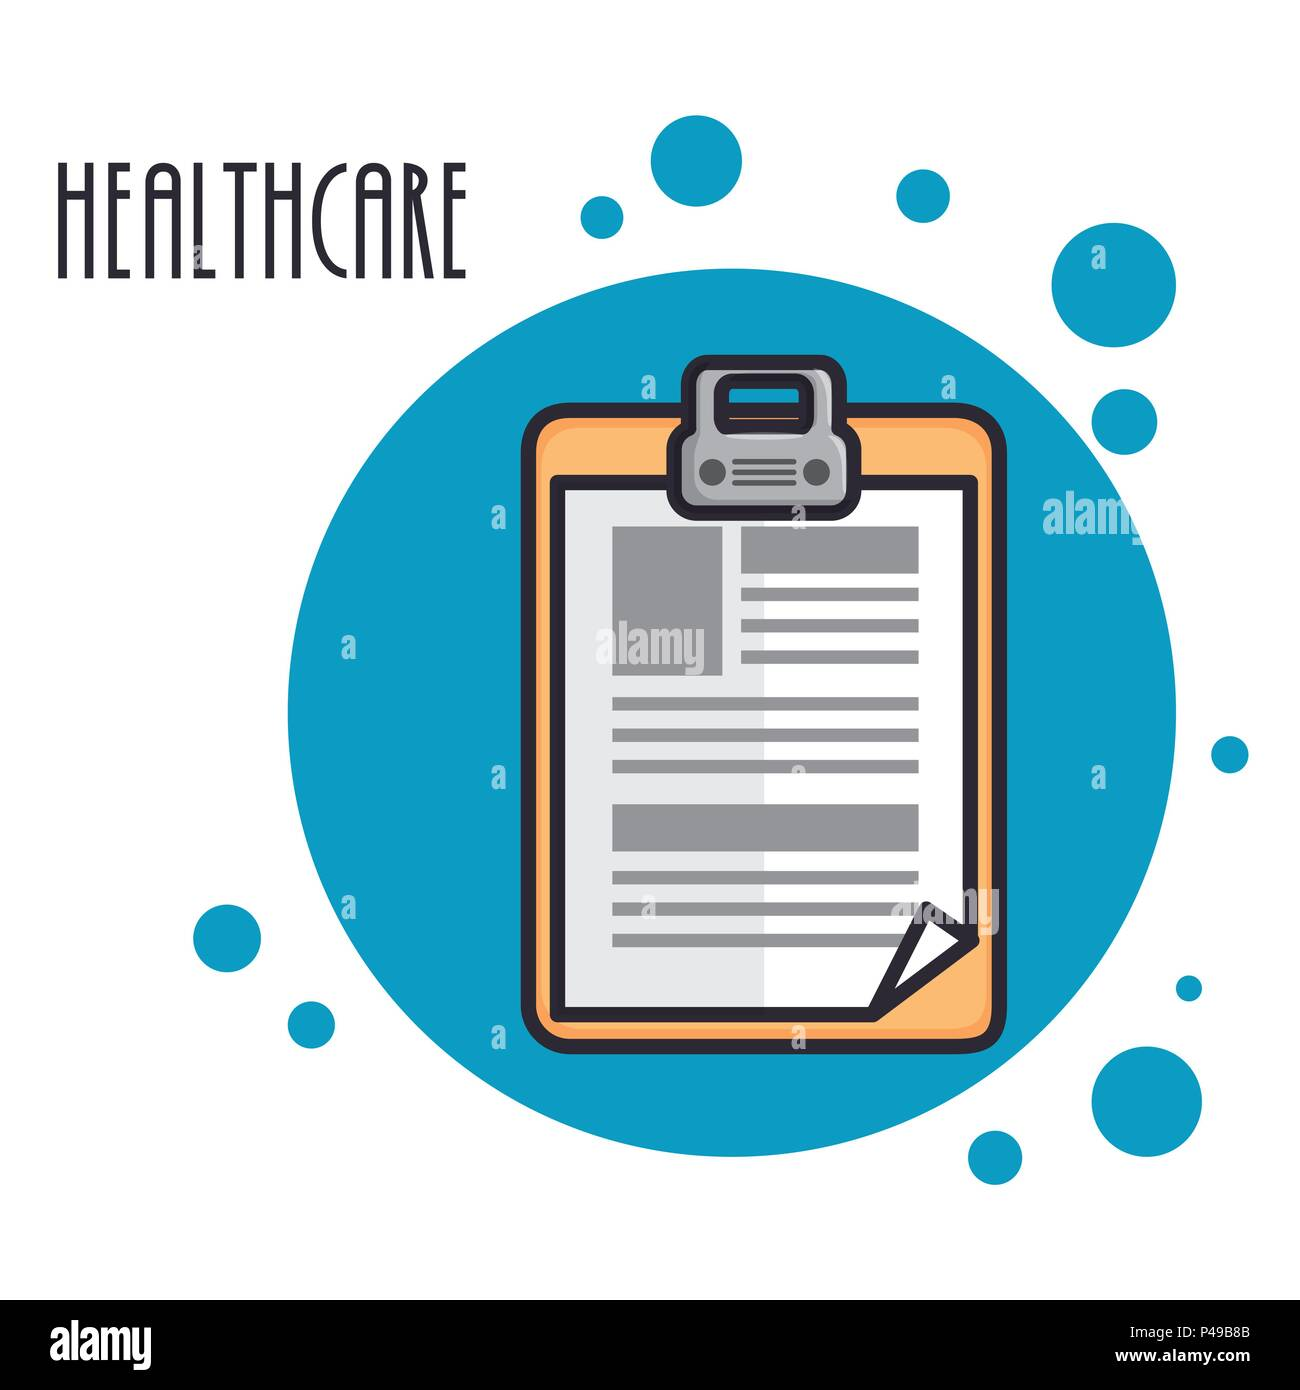 order medical healthcare icon - Stock Image